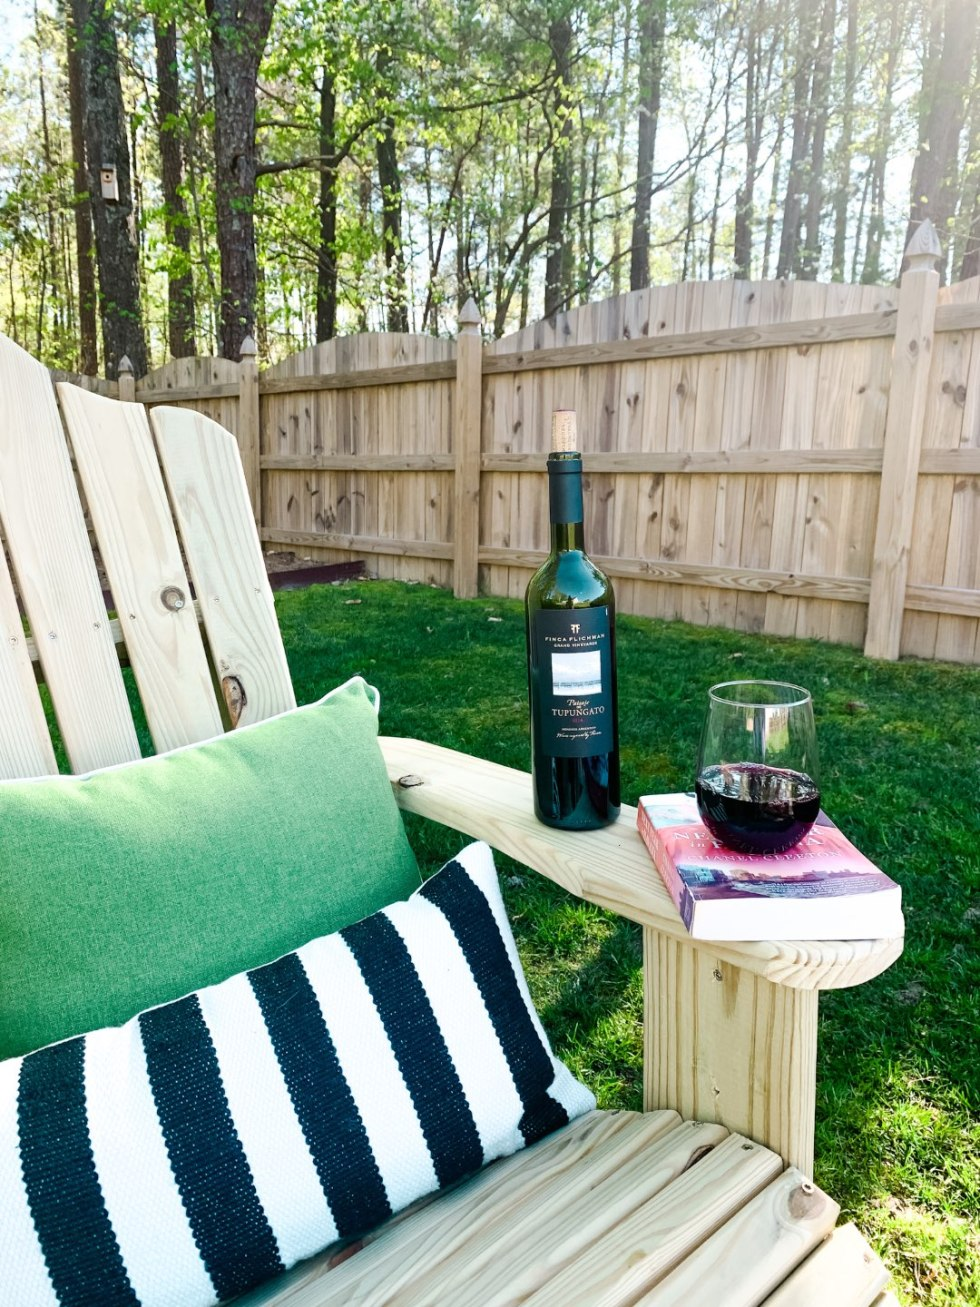 Wine Glass Styles by popular N.C. life and style blog, I'm Fixin' To: image of a Crate and Barrel stemless wine glass on the arm of a chair.